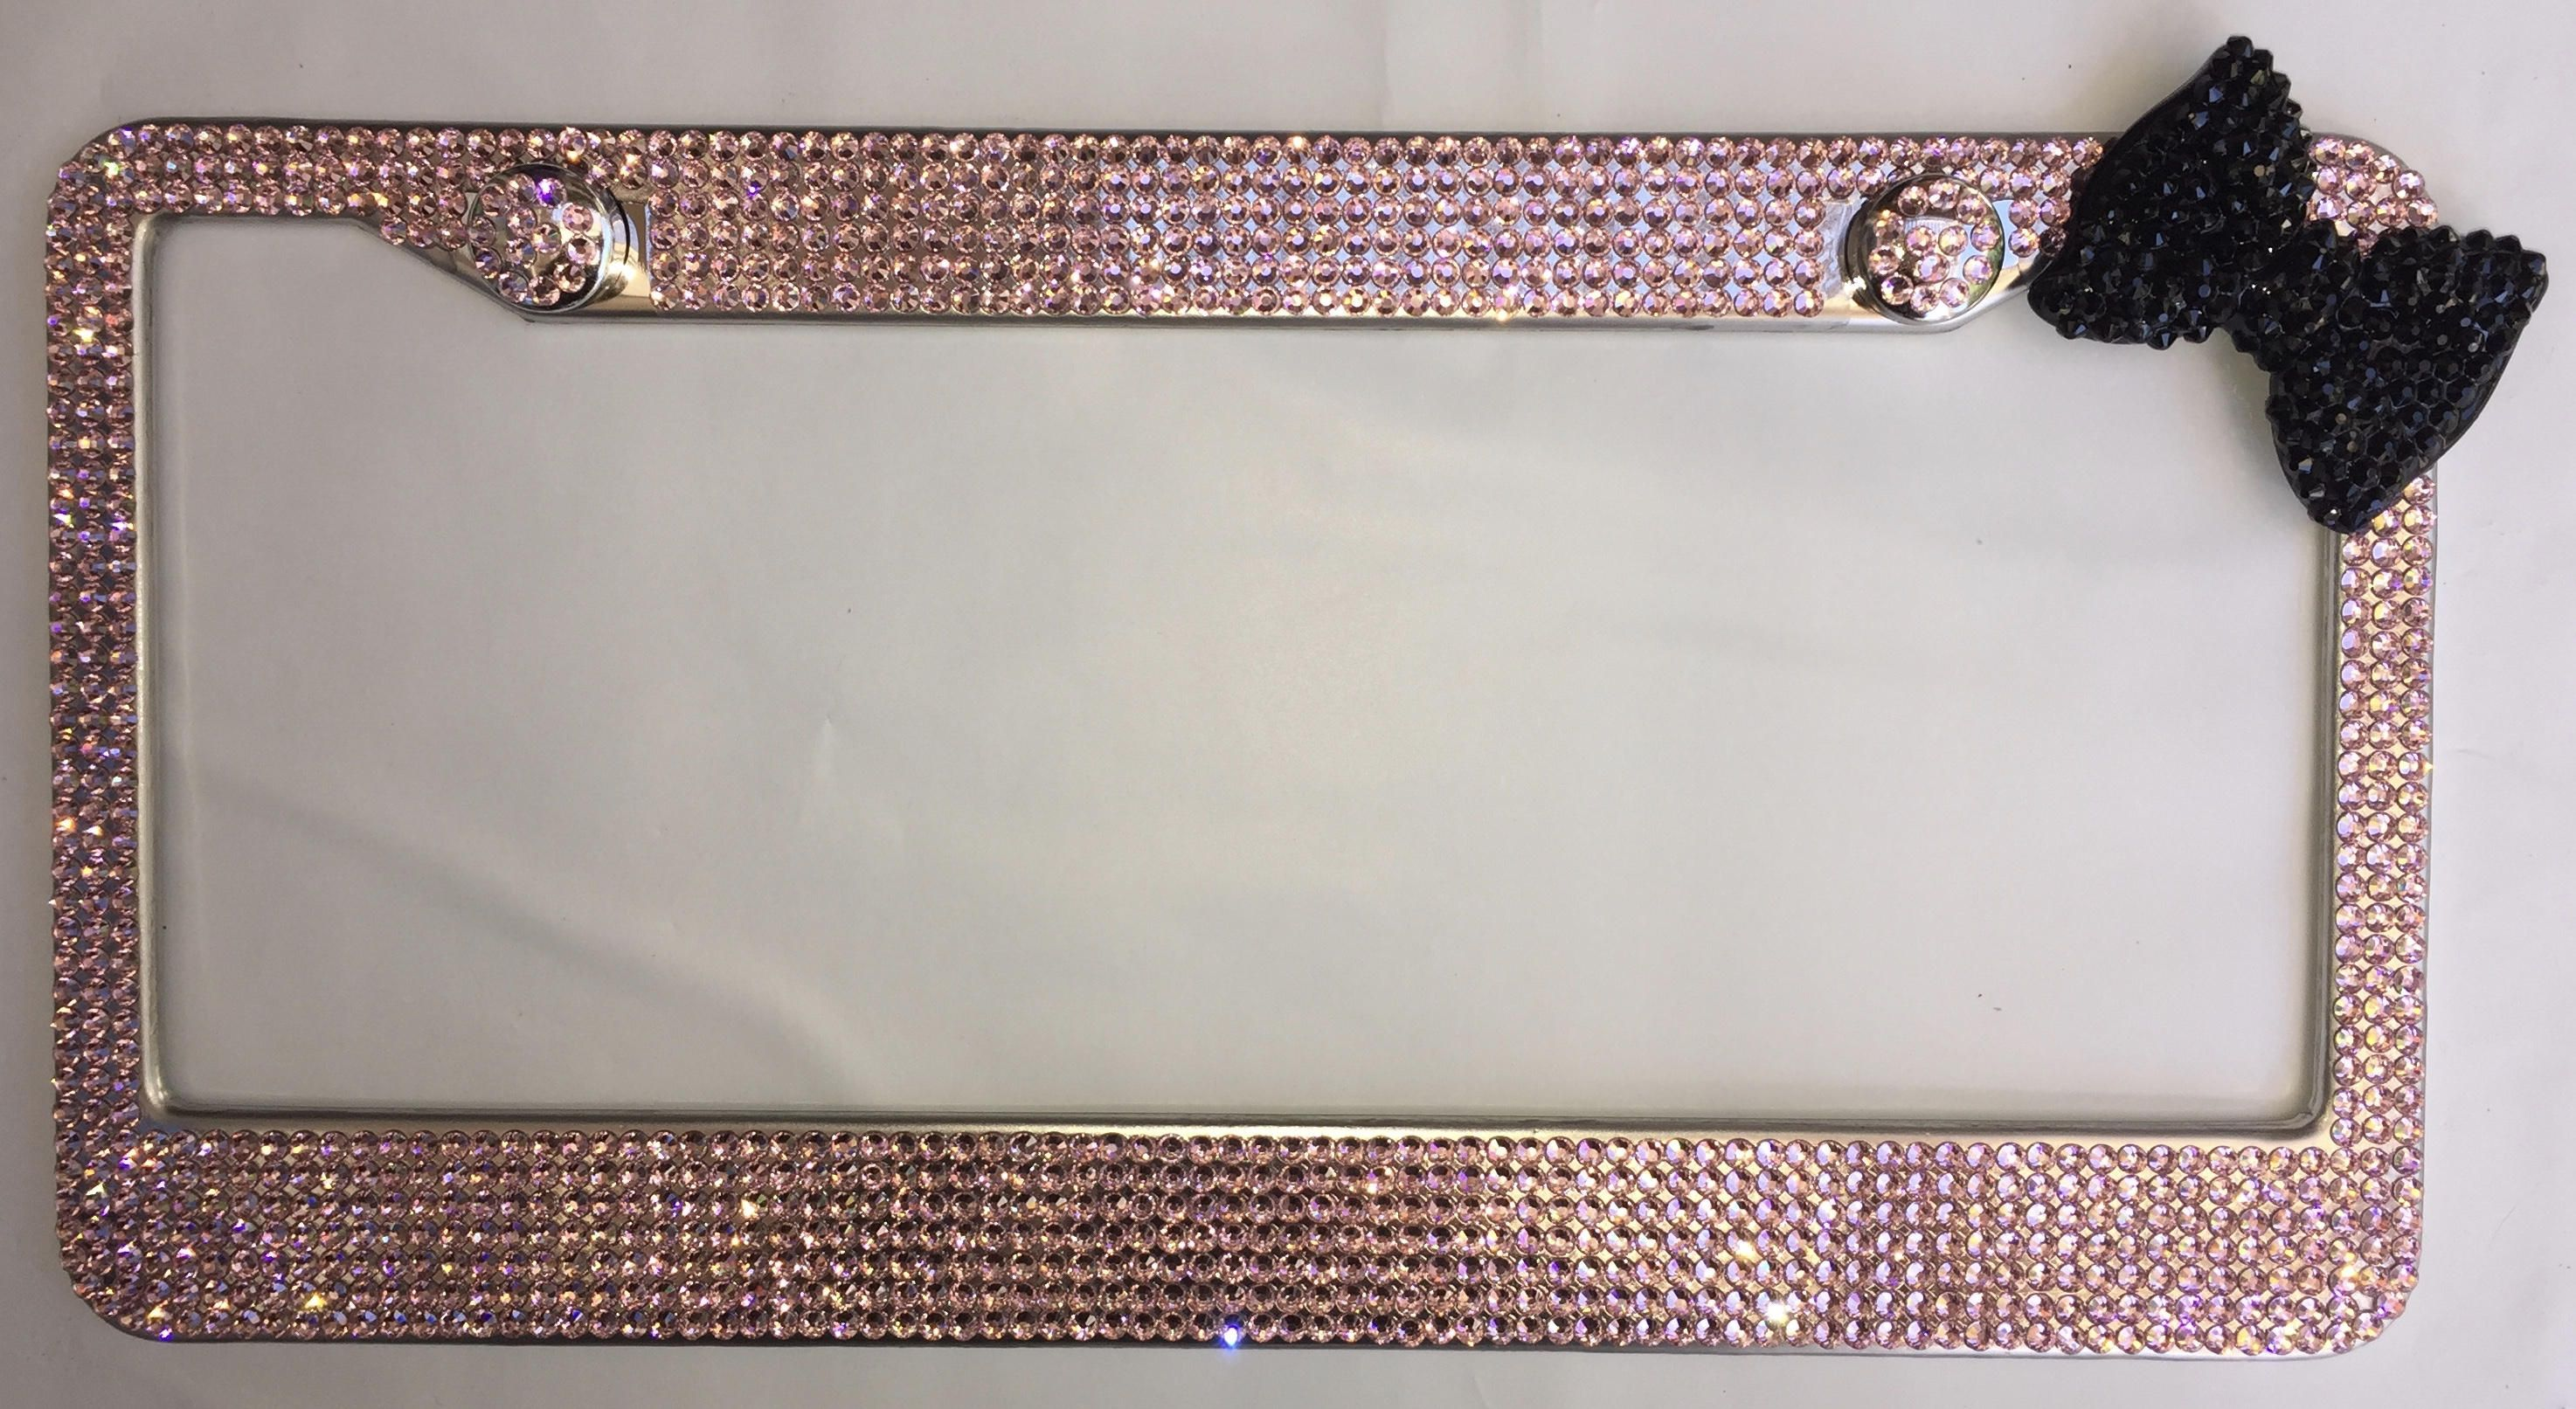 Unique Bling License Plate Frames With Bow Ideas - Picture Frame ...